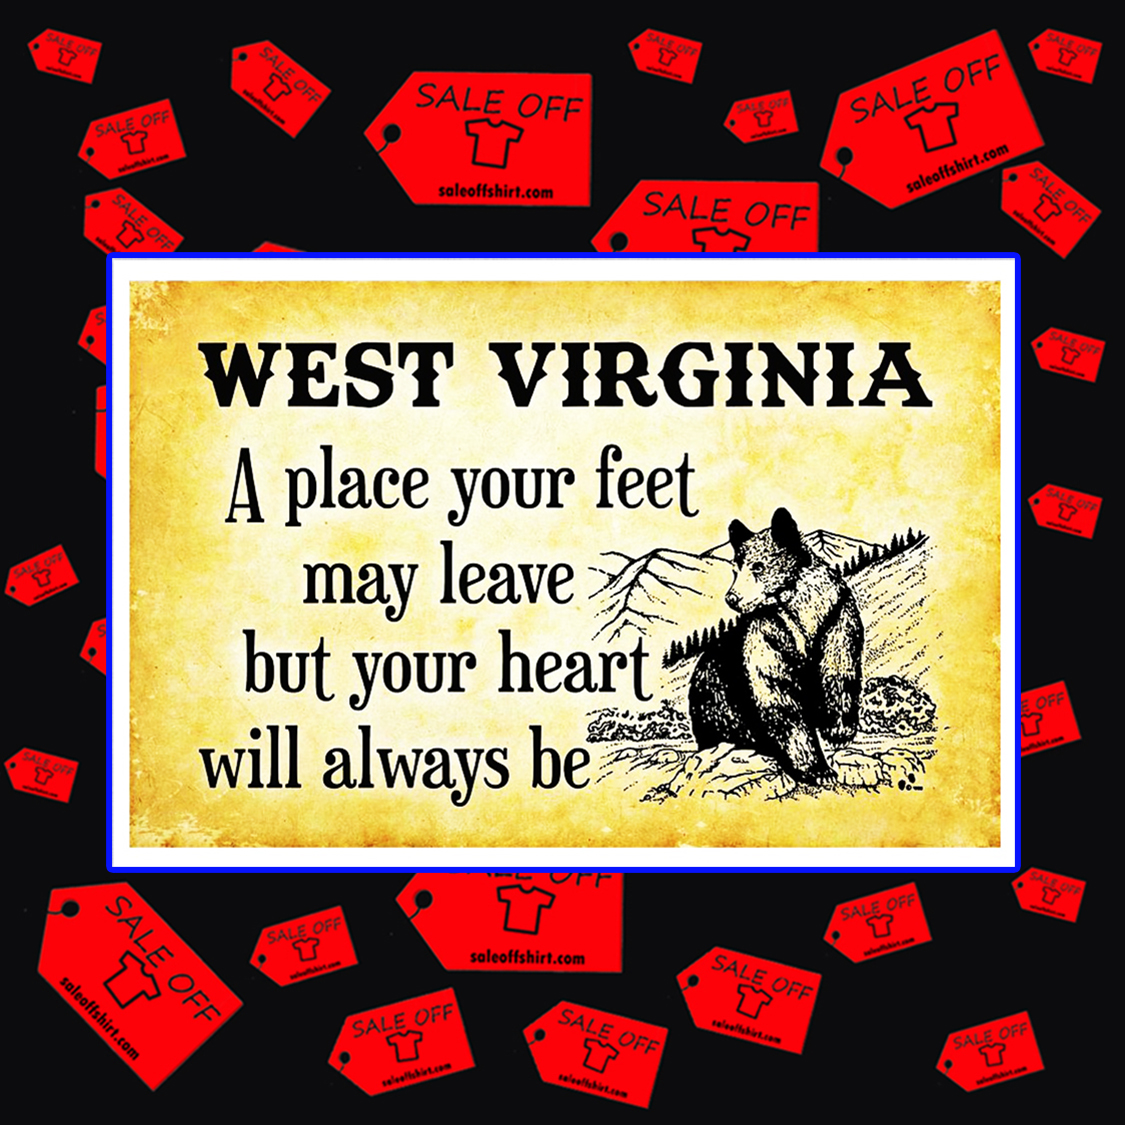 West Virginia a place your feet may leave but your heart will always be poster 24x16